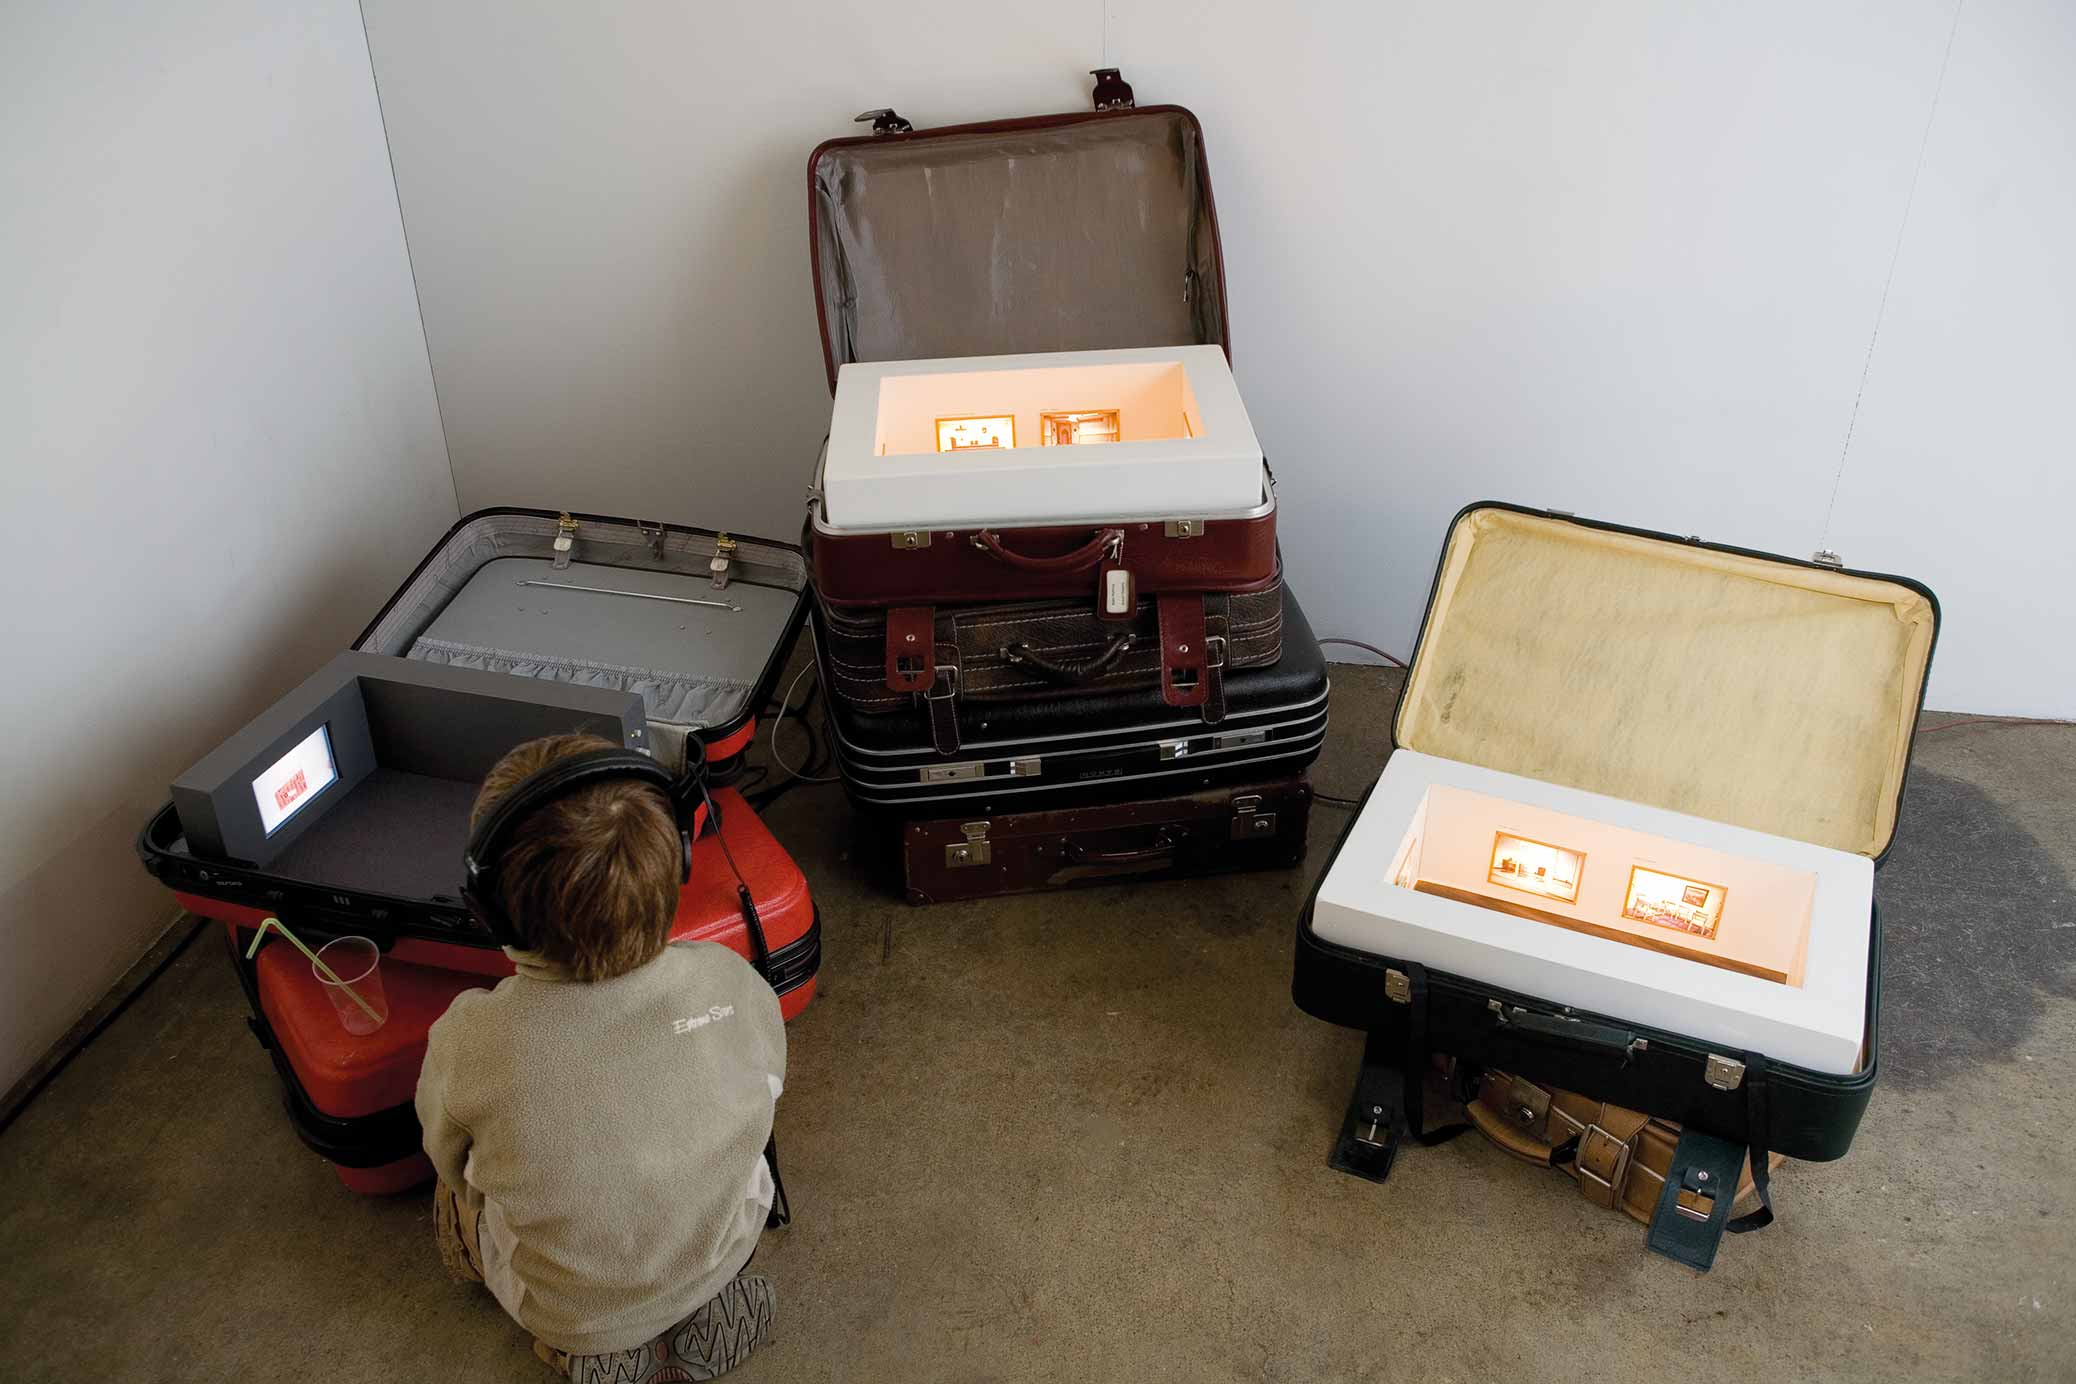 Suitcase Studies, installation with miniature exhibitions inside suitcases. Boy watching video.